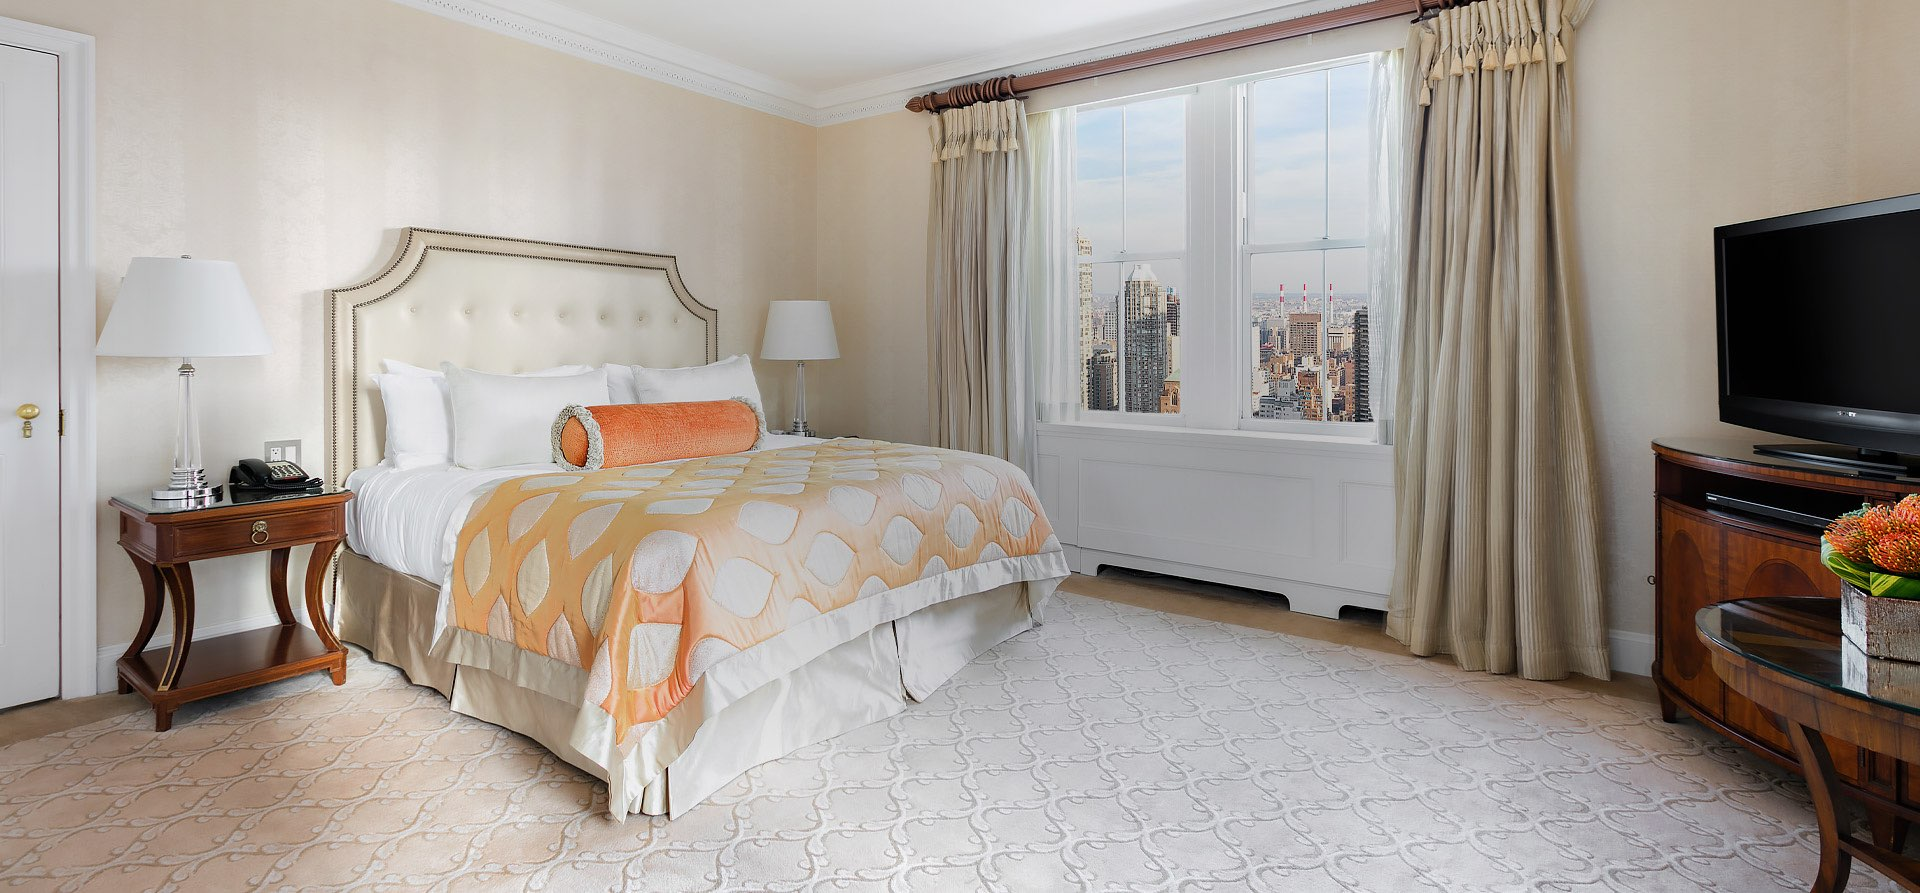 bright room with large bed and city view